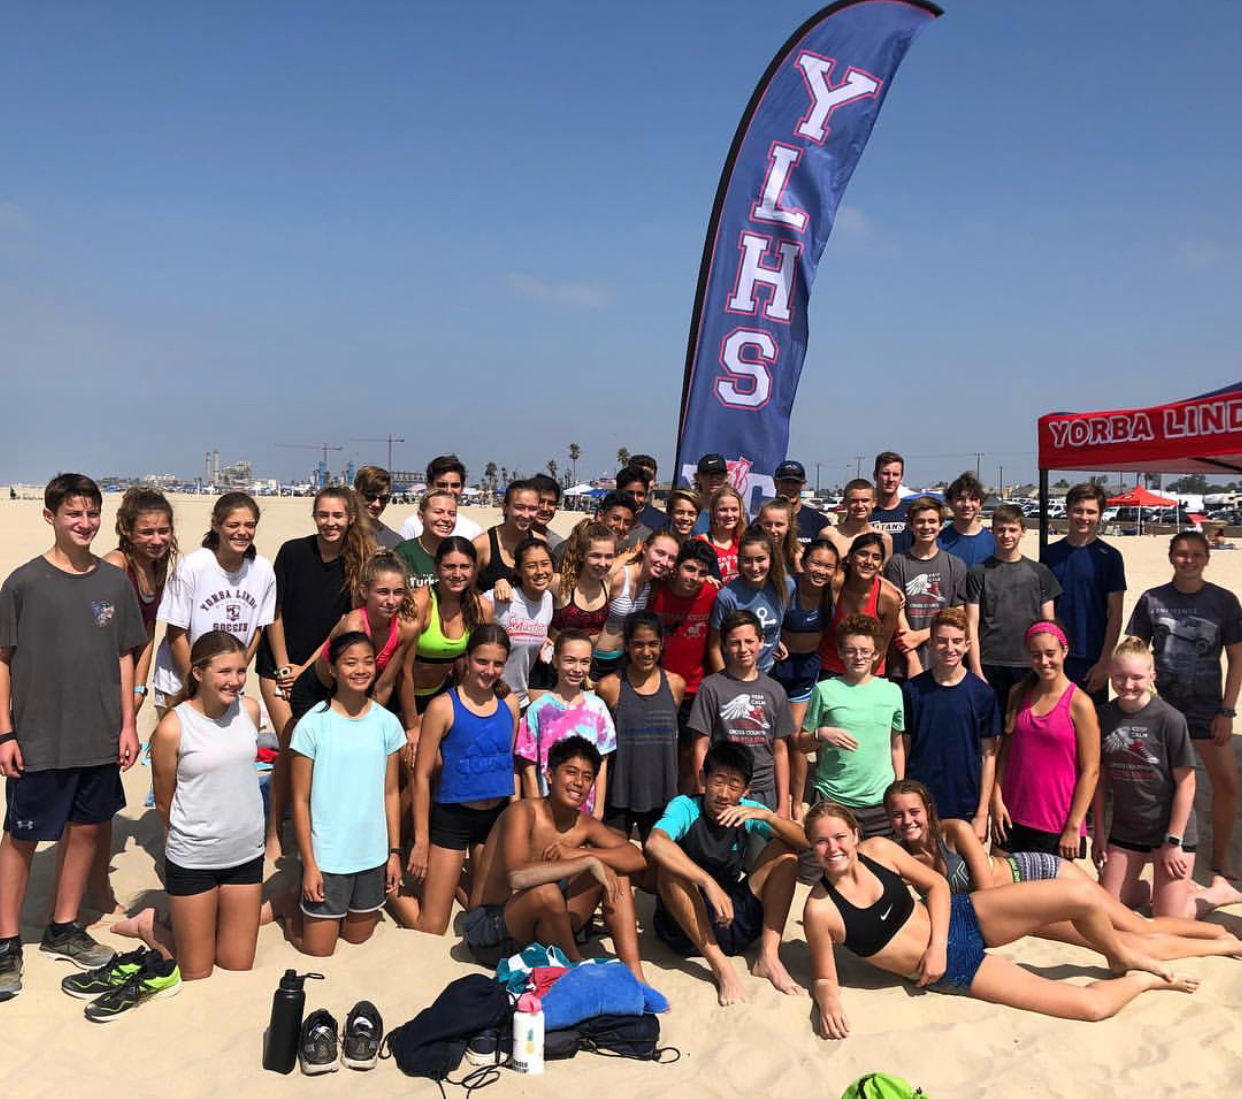 The cross country team at their end of summer camp beach run.